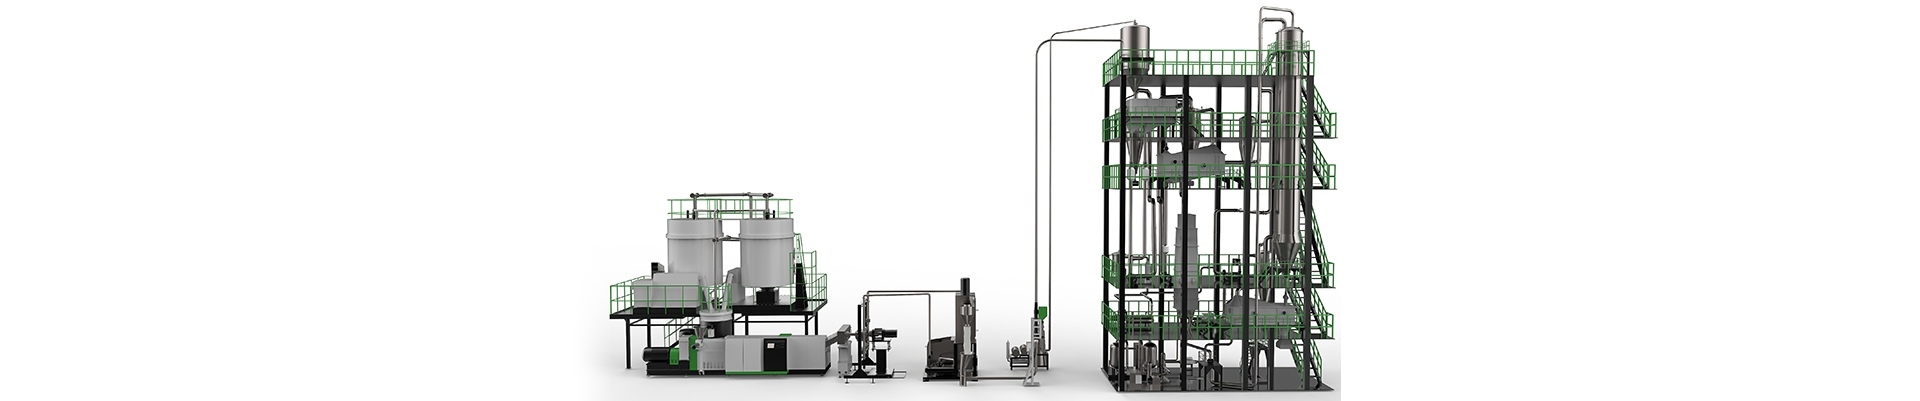 SSP(Continuity) Pet Waste Recycled Plastic Pelletizing Machine For IV Increase